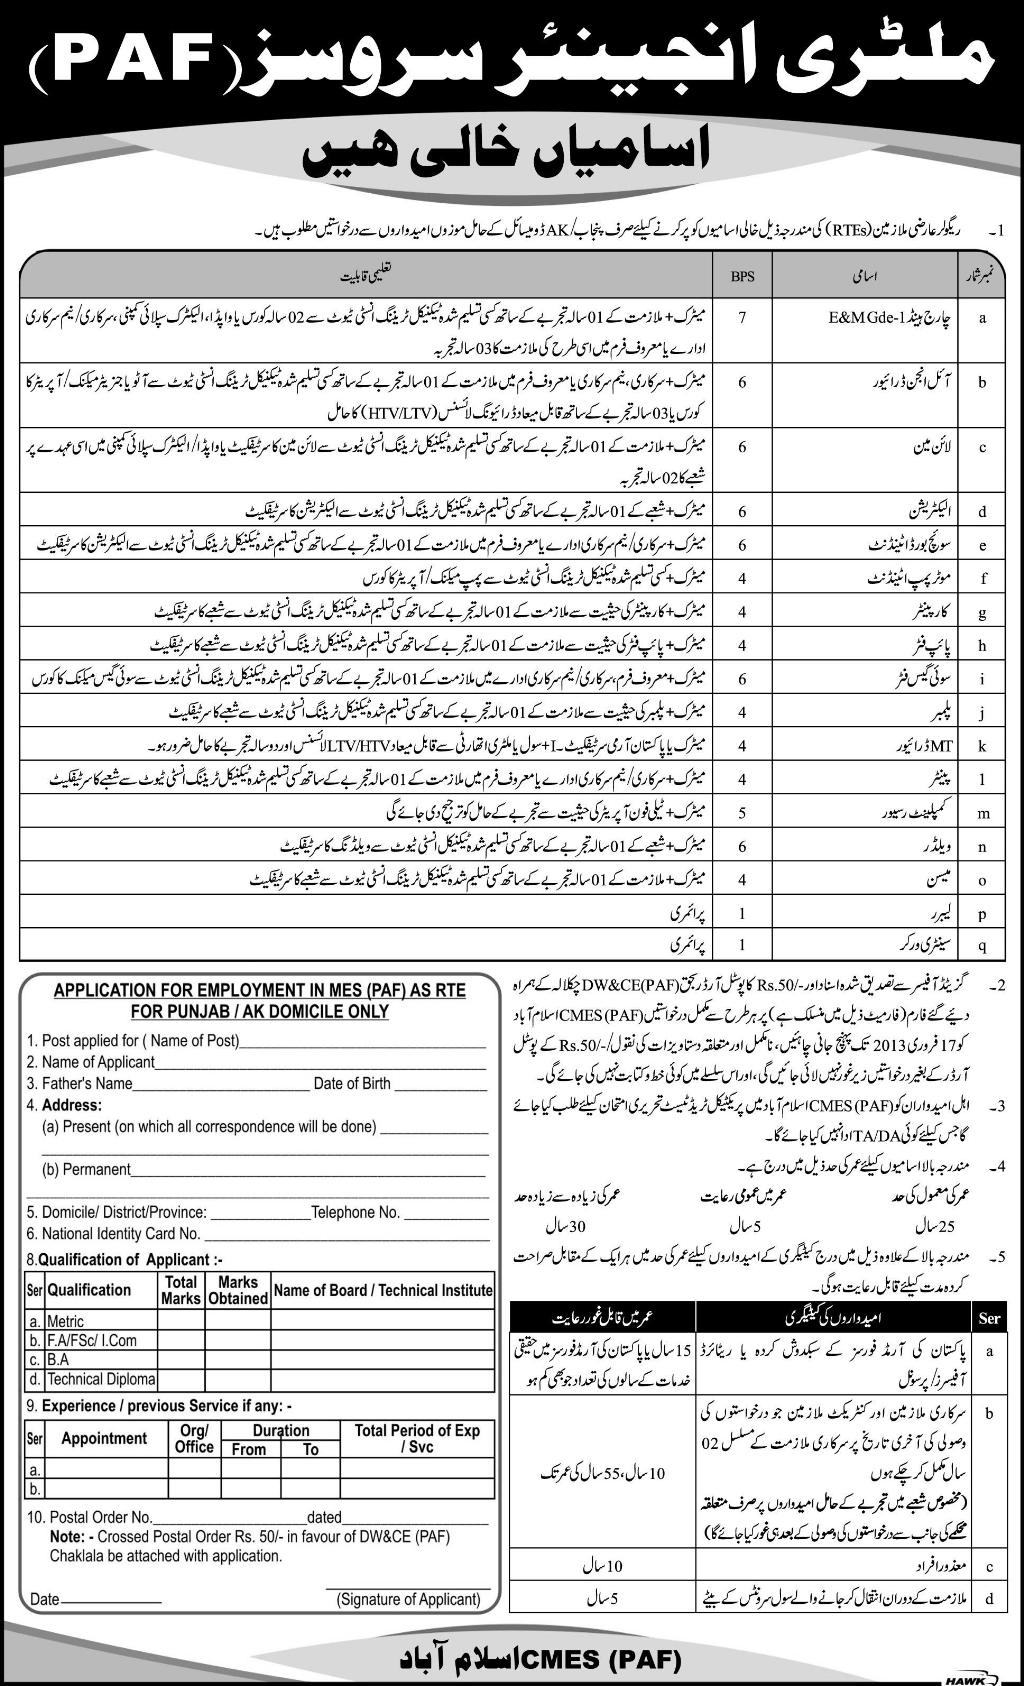 Military-Engineering-Services-MES-PAF-Jobs-January-2013 Job Application Form Civil Engineers on new school, us lottery, for namwater, divine word university, naba scholarship, for miss glamorous, jee exam, junior engineer job, flomaton police, for p1 teachers, nigeria govt diploma online,